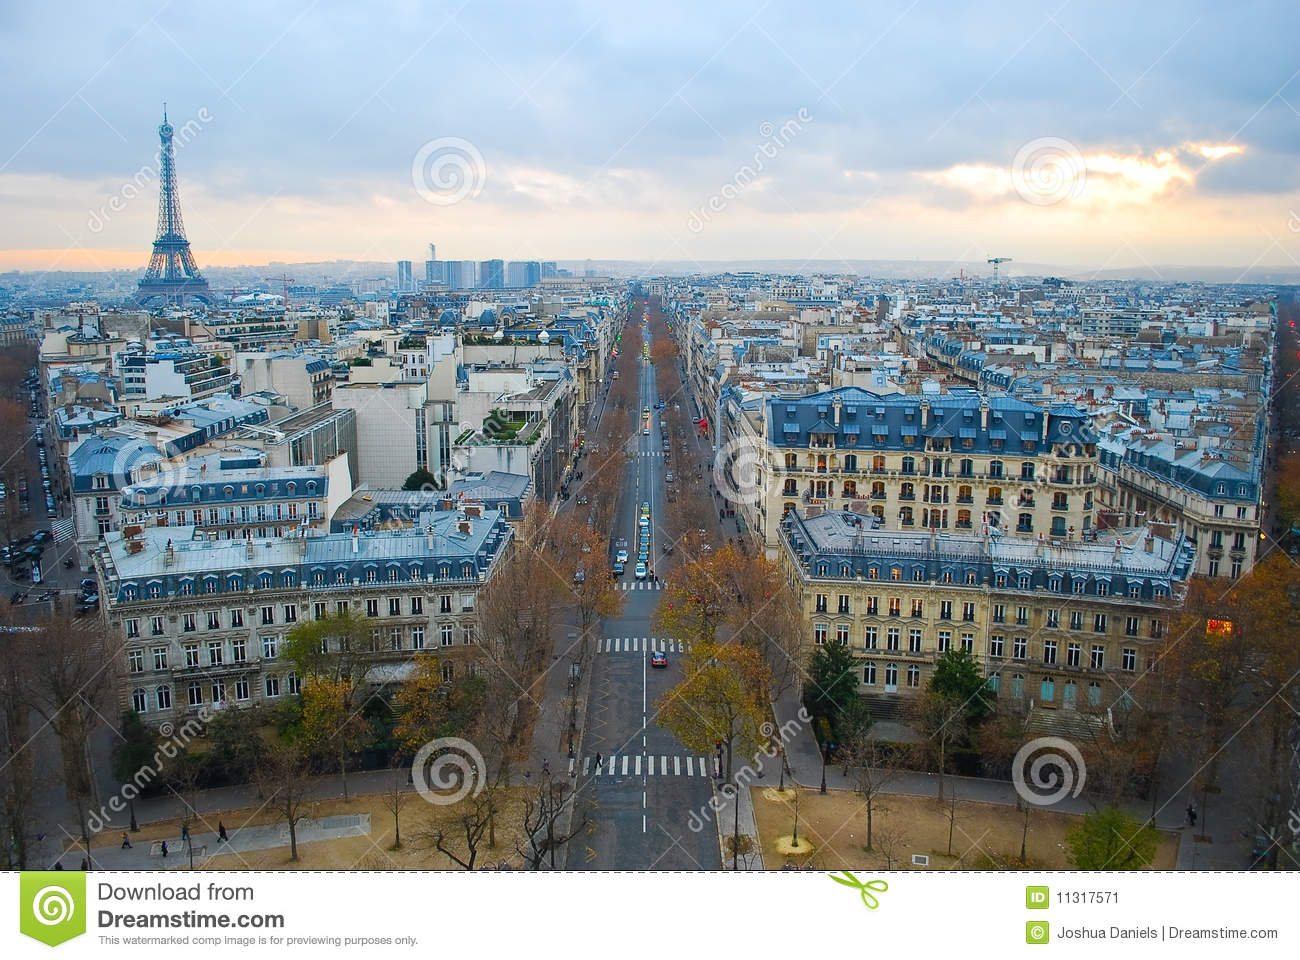 Paris, France, viewed from the Arc de Triomphe